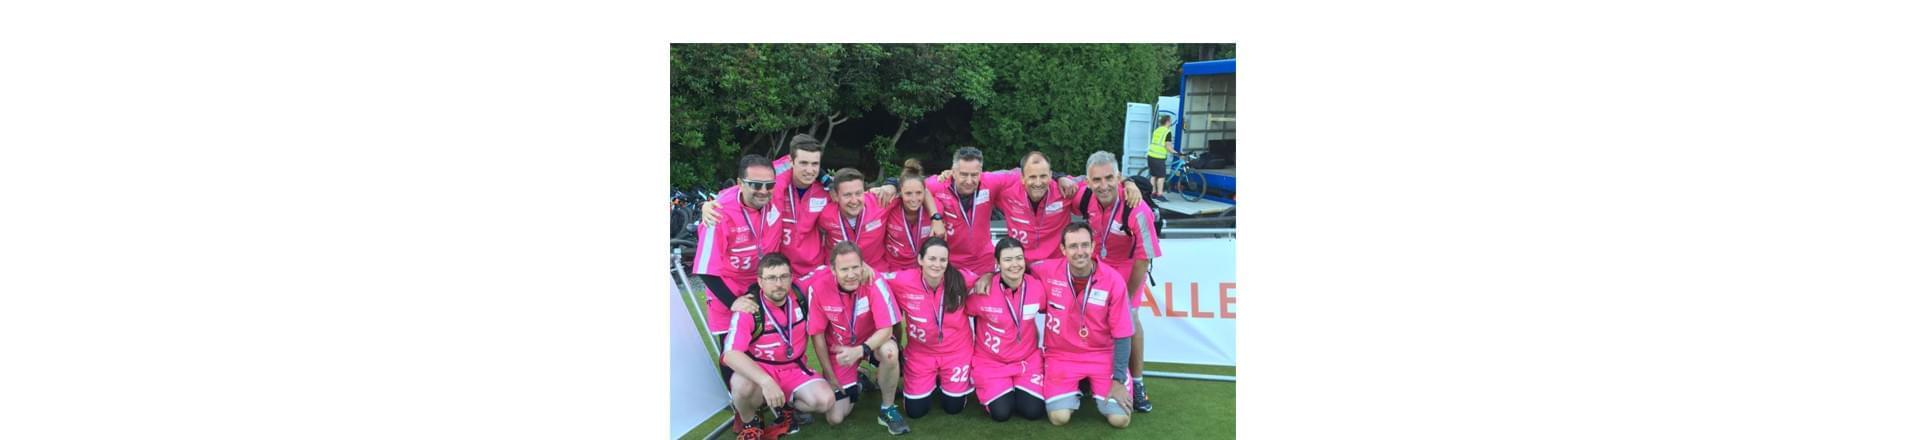 T-Systems employees who took part in the UK Challenge 2017. They are wearing magenta outfits and medals.